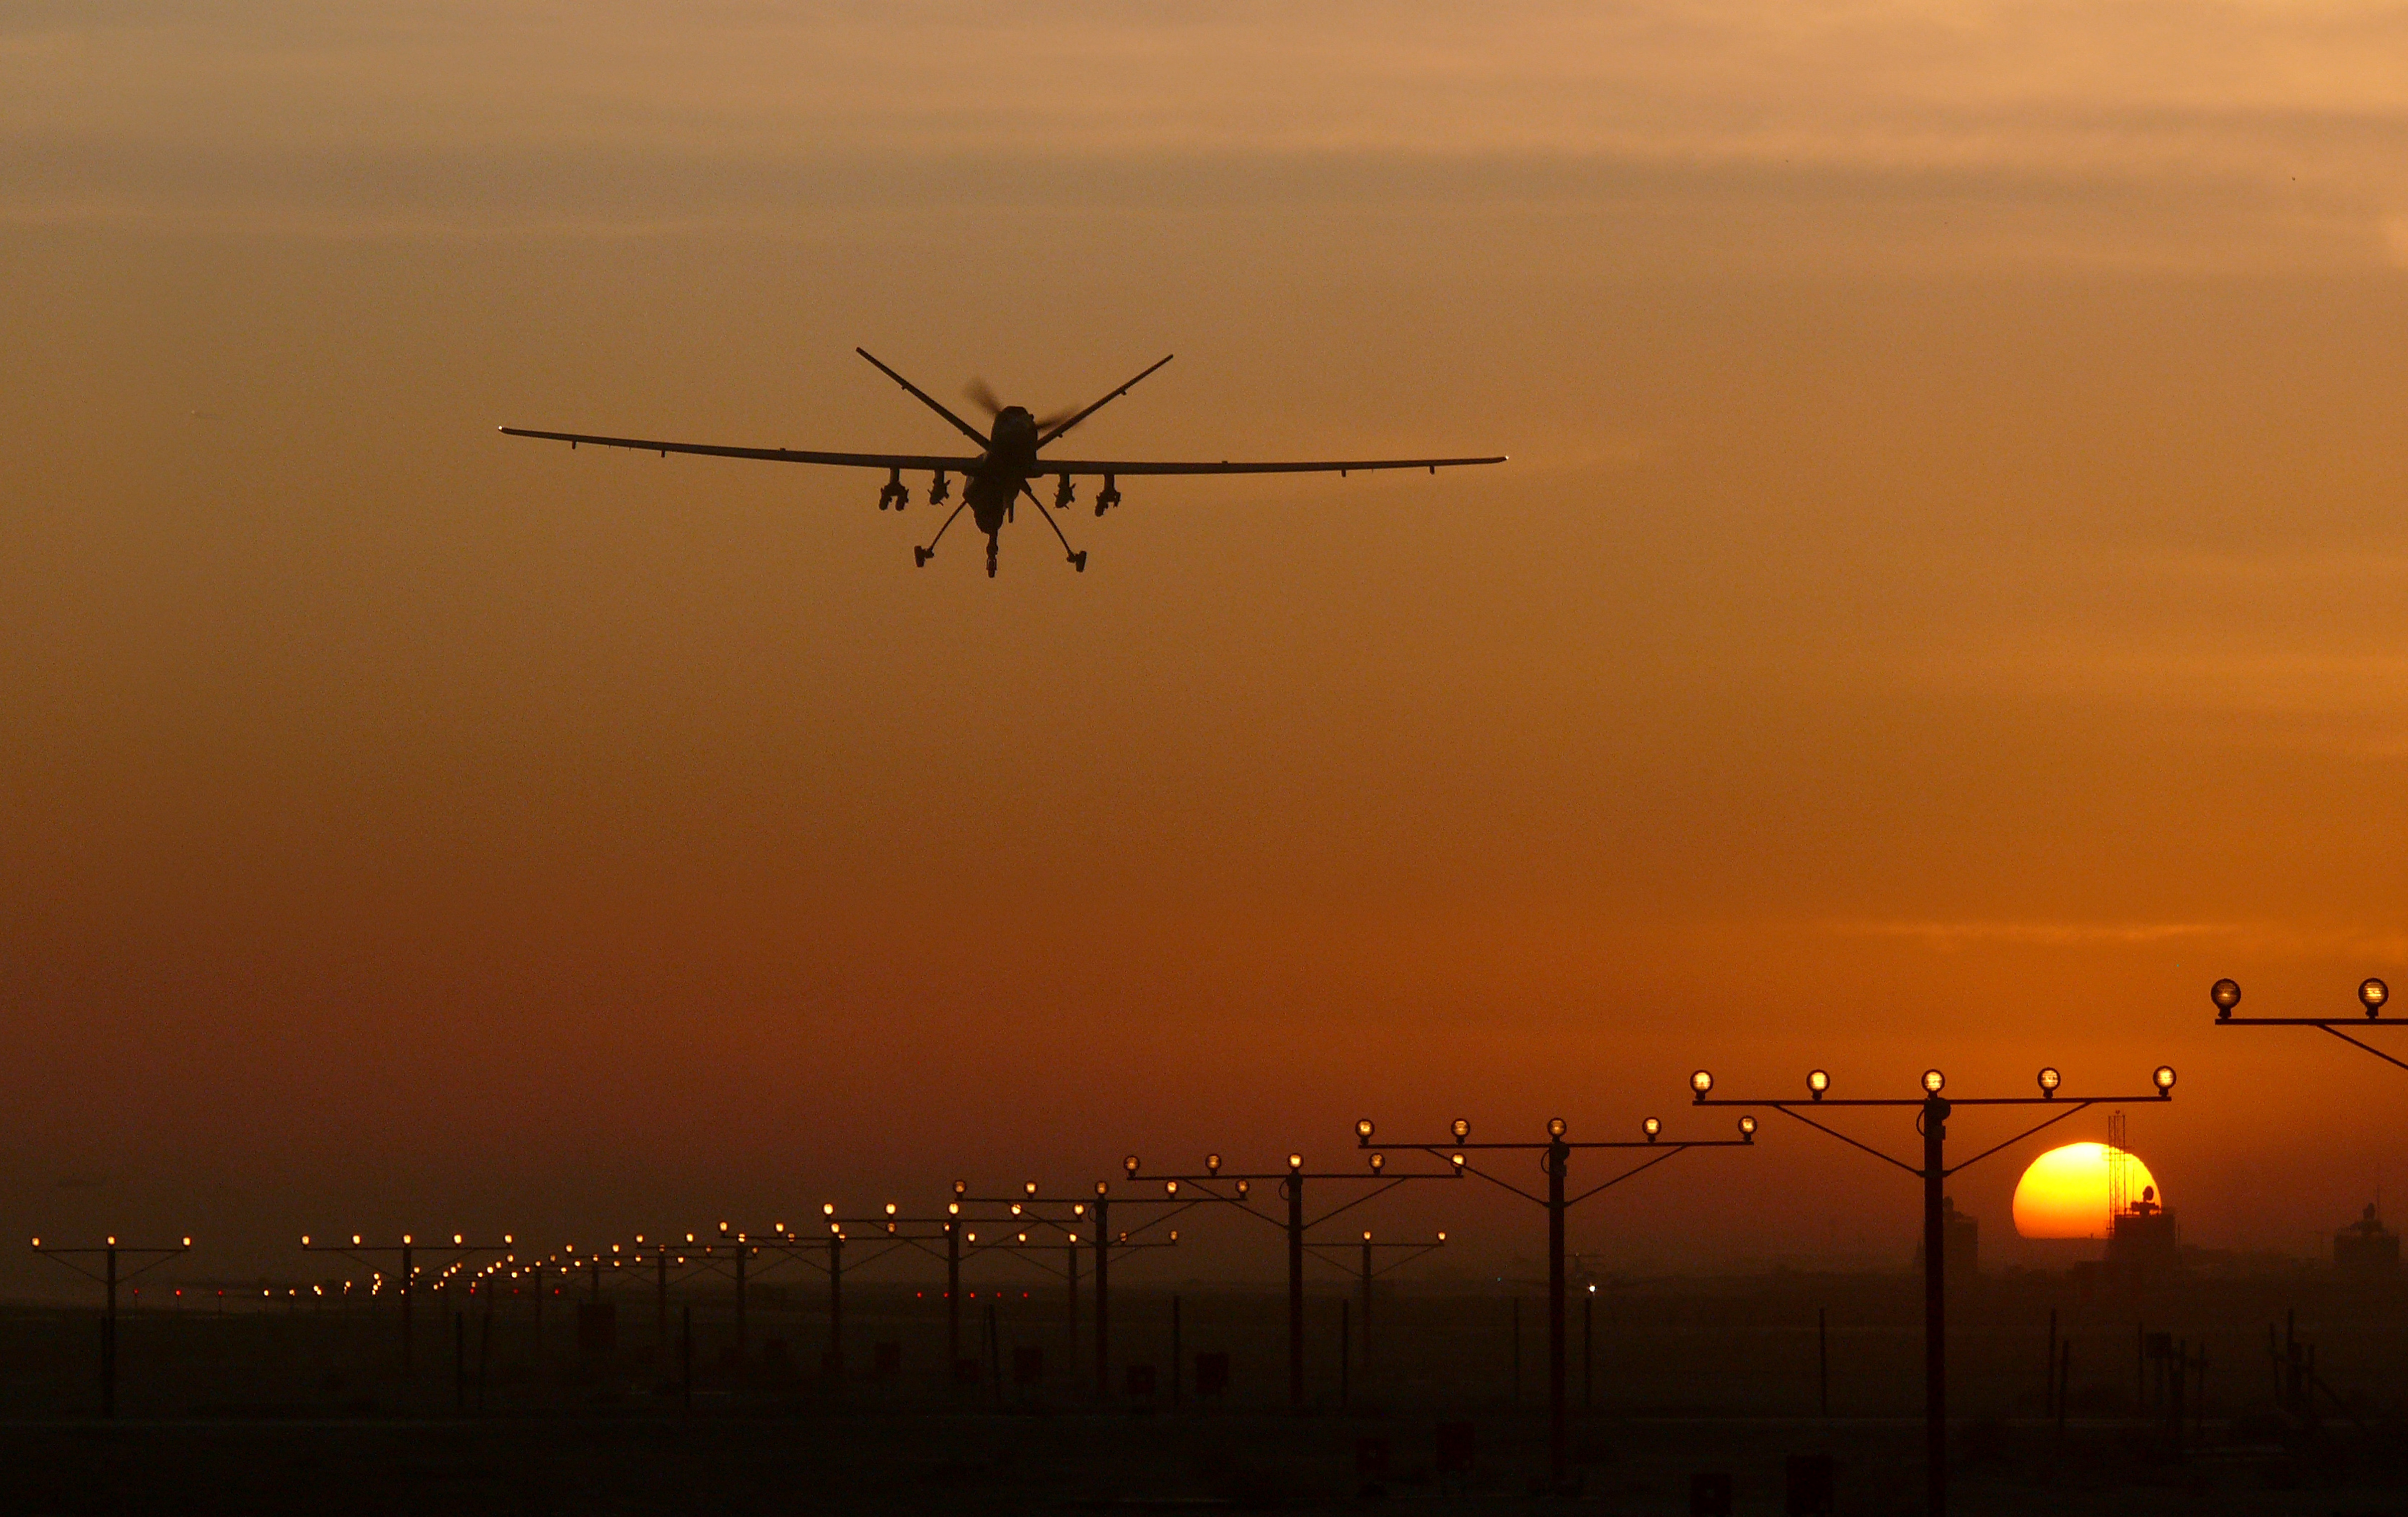 mq 9 reaper with File Reaper Rpas Aircraft Lands At Kandahar  Afghanistan Mod 45154678 on Uavs Drive Sat  Modernization additionally ReaperDrone together with Military photos 20100105235514 furthermore 501820 also Drohnen.